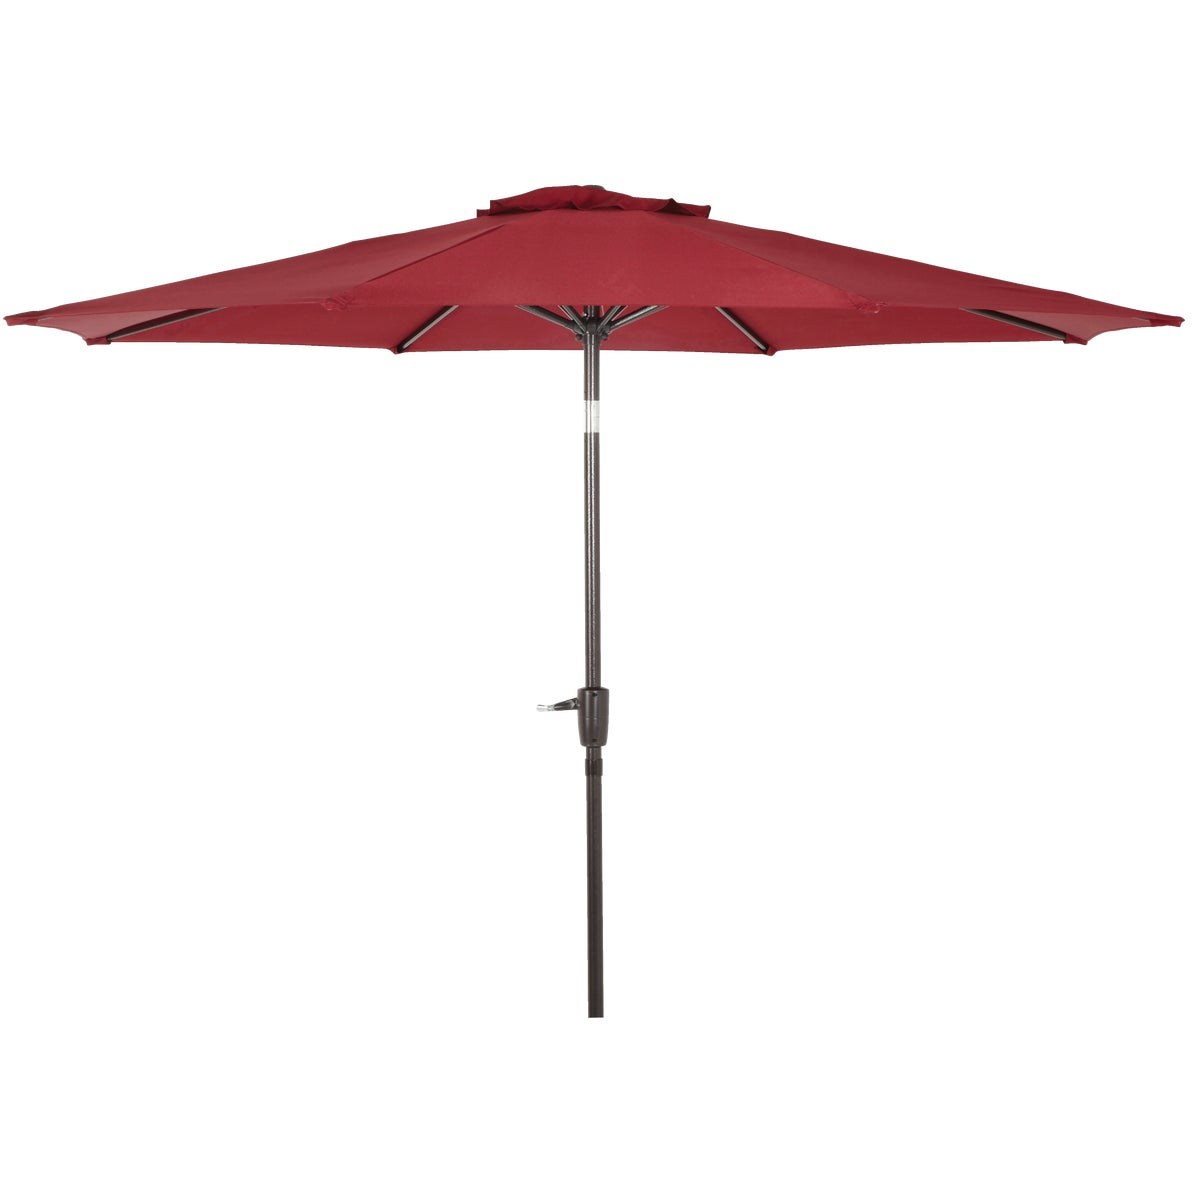 9' BURGNDY ALUM UMBRELLA - TJAU-004A-270-BRG by Do it Best